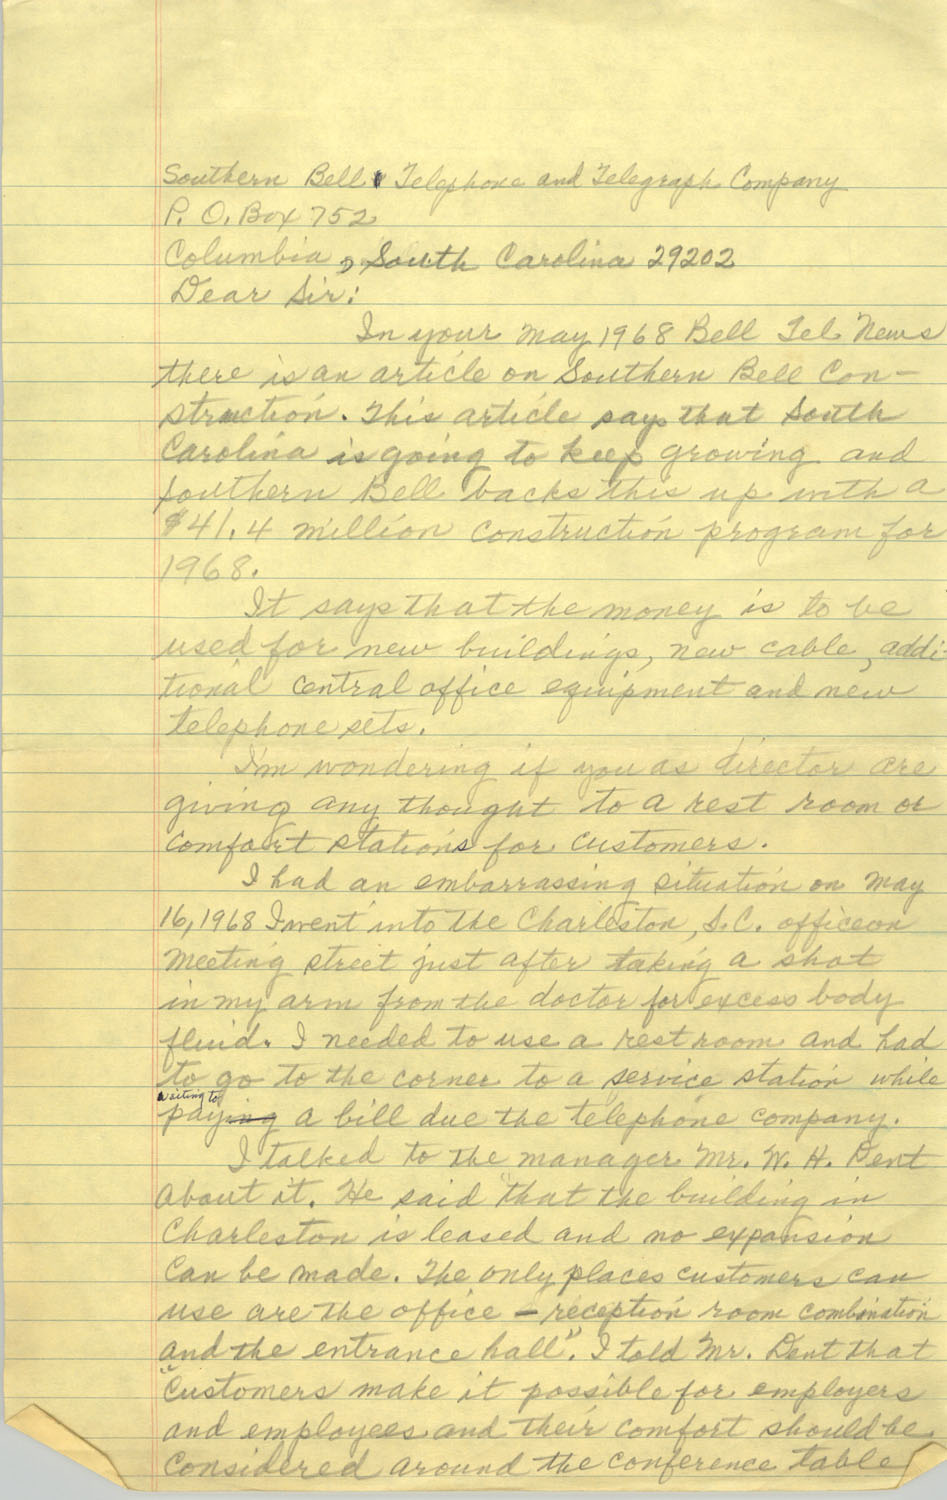 Letter from Septima P. Clark to Southern Bell Telephone and Telegraph Company, 1968